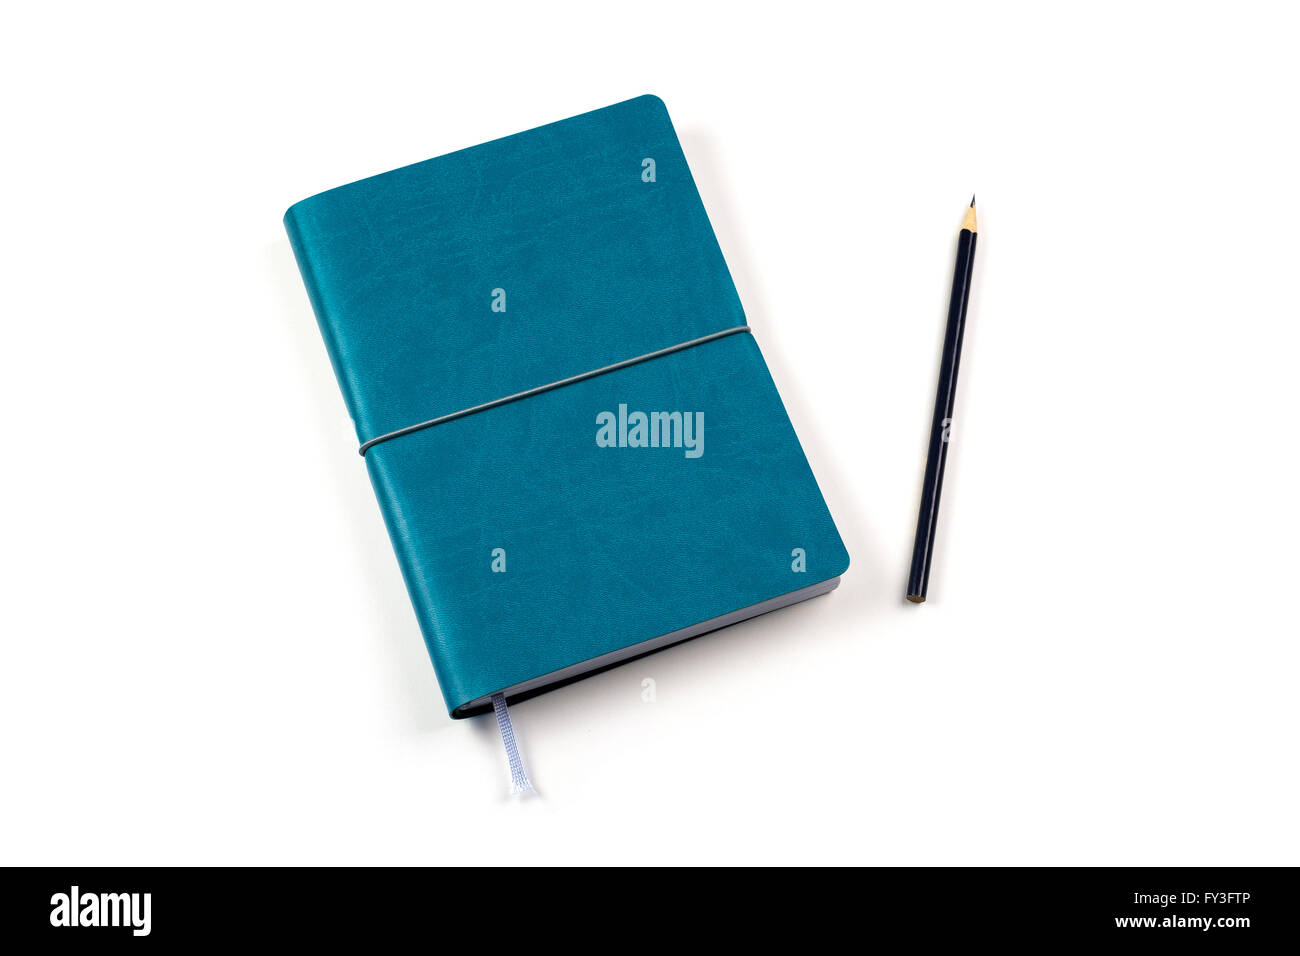 blue diary with pencil on white background - Stock Image